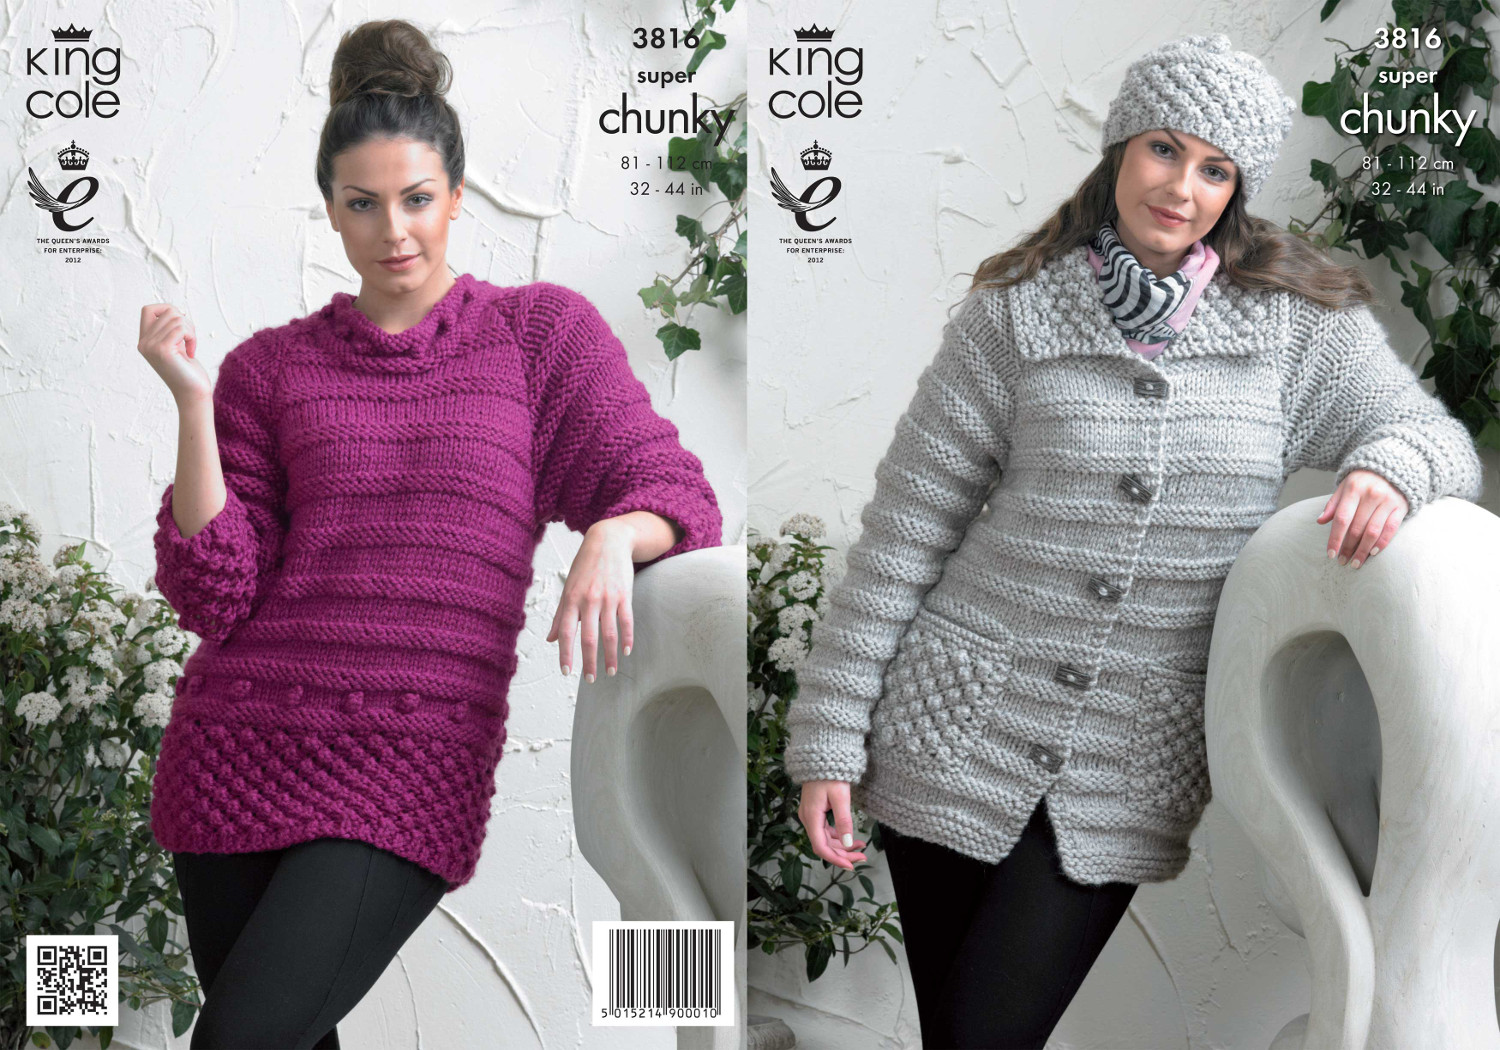 Super Chunky Jumper Knitting Pattern : Ladies Super Chunky Knitting Pattern King Cole Striped Sweater Jacket Hat 381...